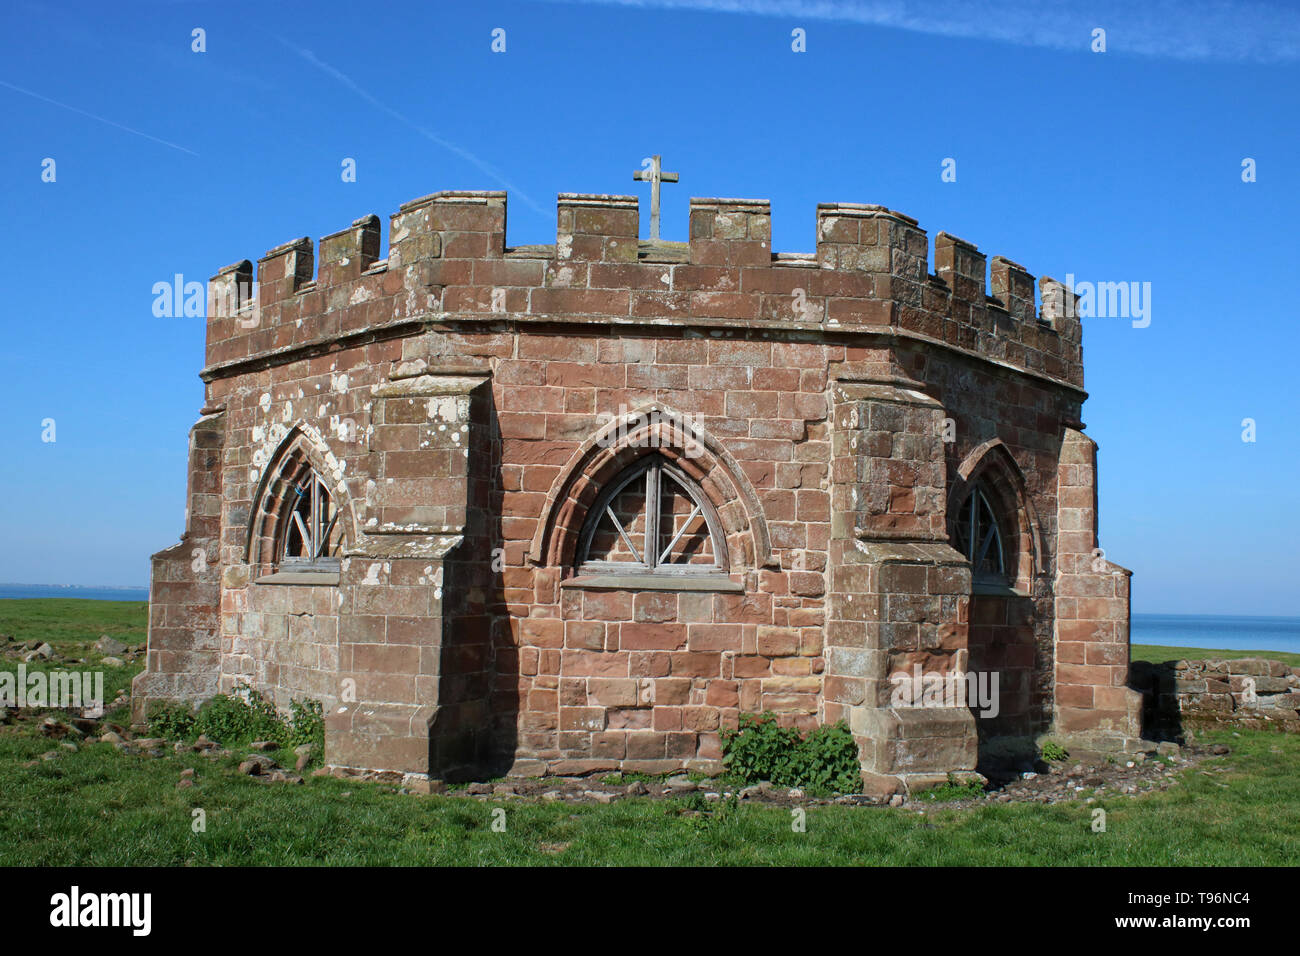 The Chapter House at Cockersand Abbey, Lancashire, Grade 1 listed building and Scheduled Ancient Monument that was built as a premonstratensian priory. - Stock Image